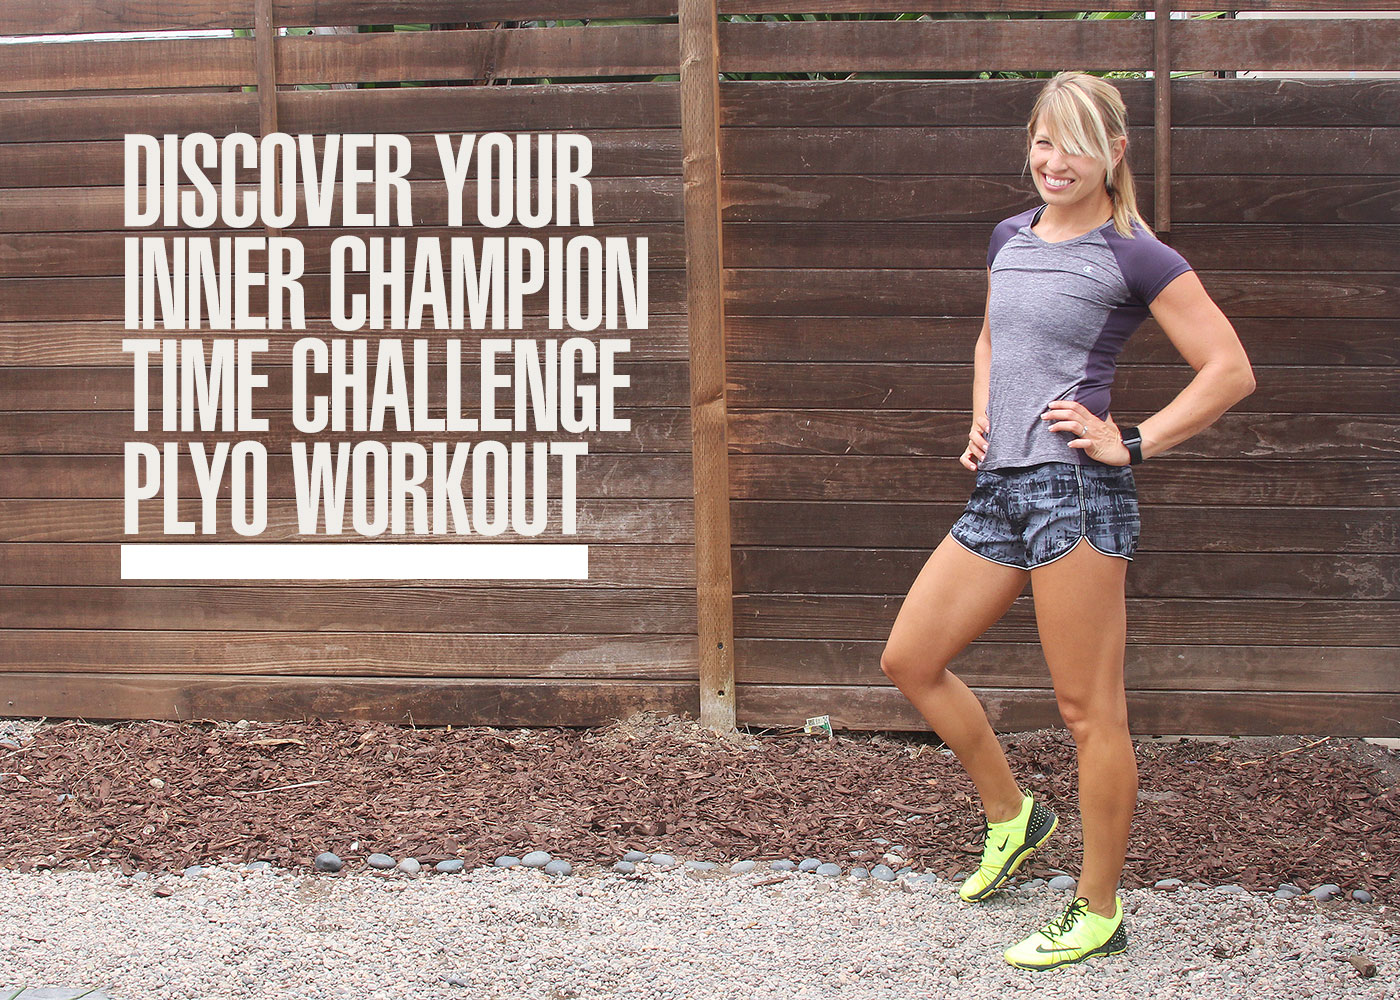 Discover Your Inner Champion Time Challenge Plyo Workout